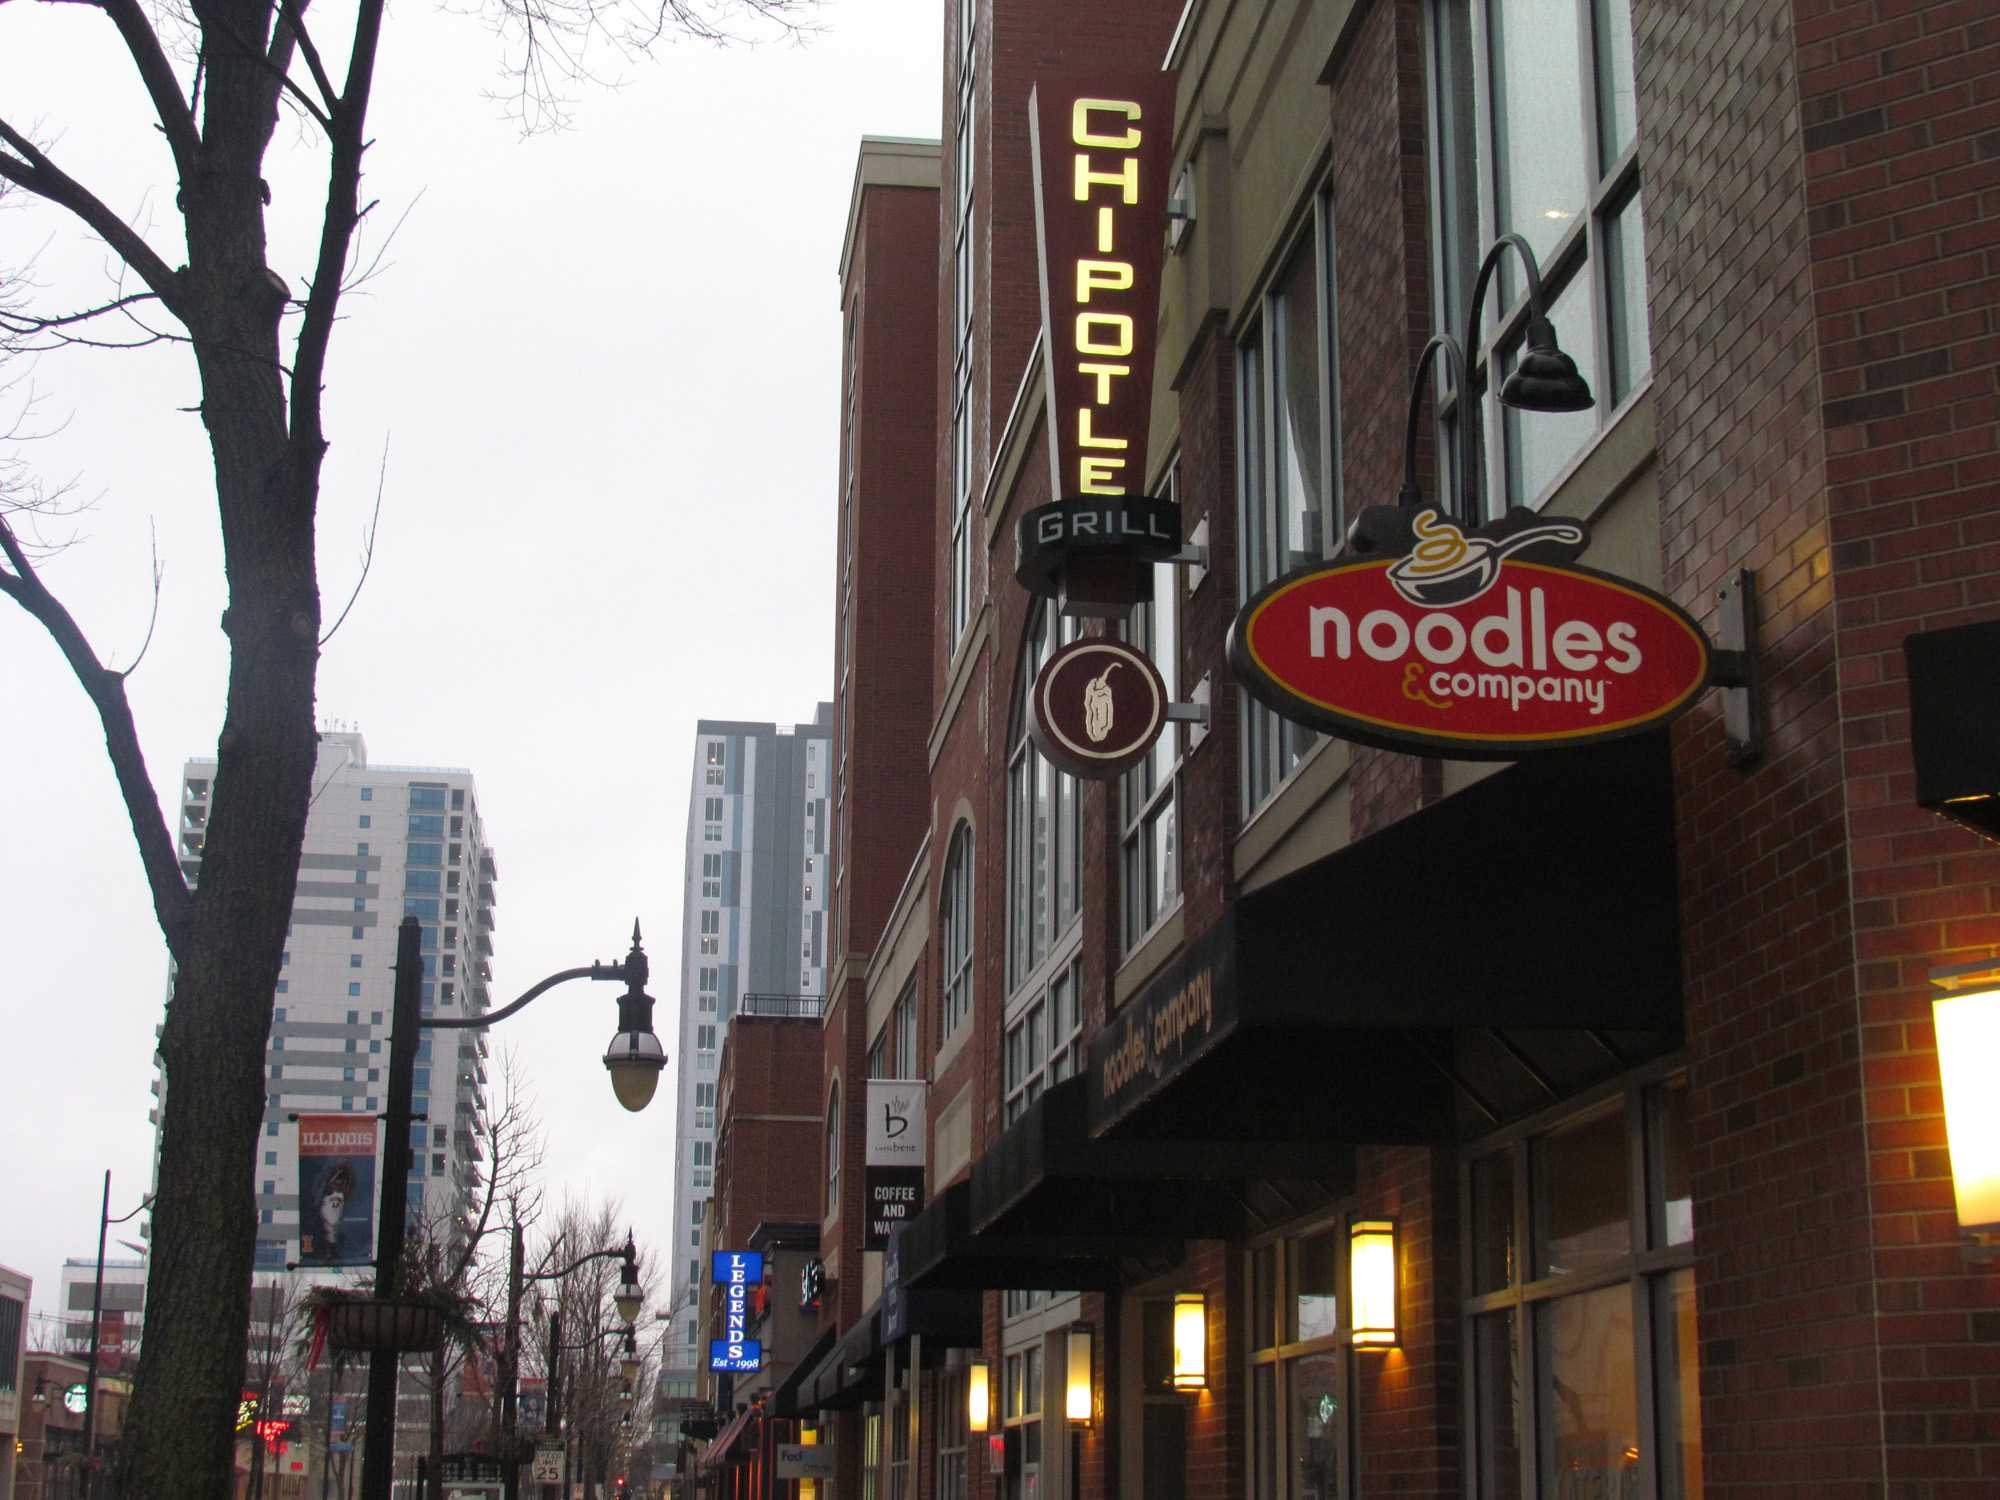 The Chipotle on Green St. was one of several locations involved in a data breach of several of the chain's locations. The campus location was vulnerable from March 25 to April 18.